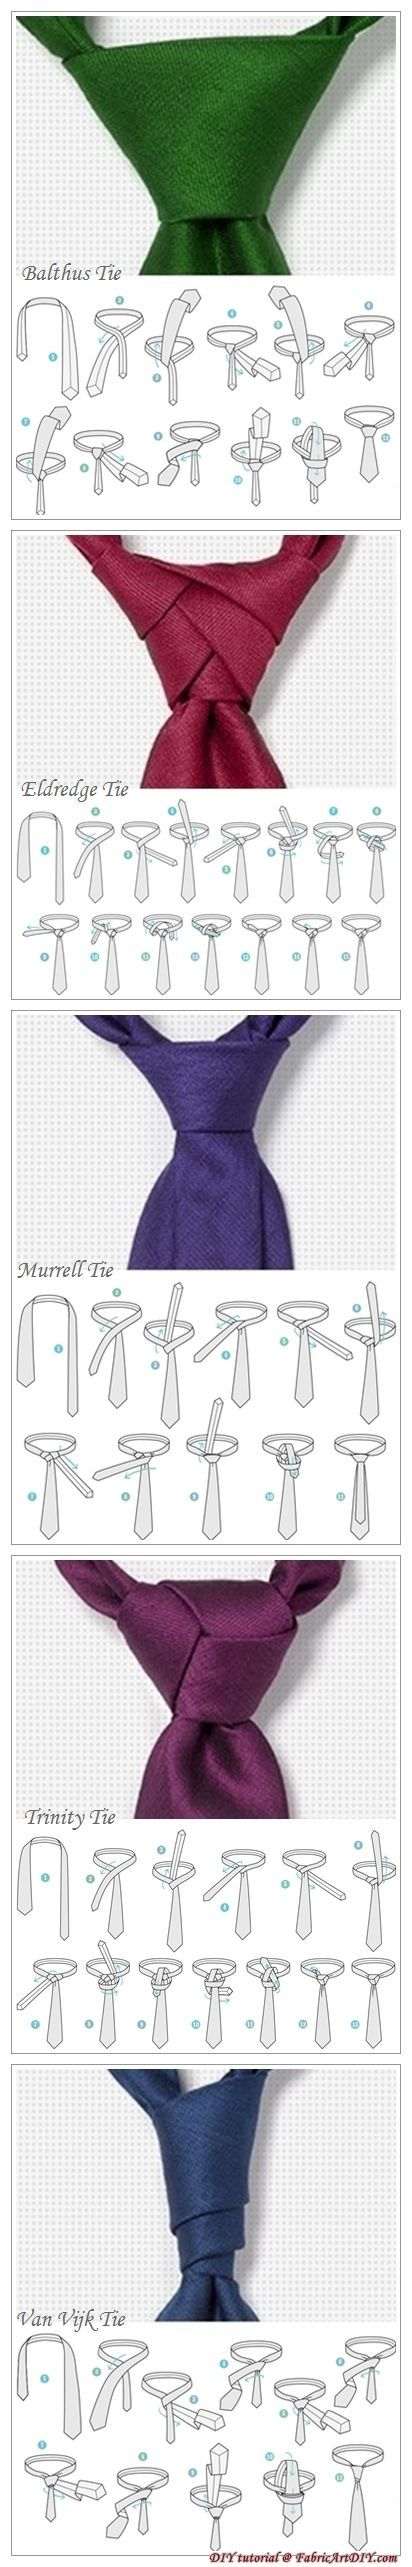 Adventurous tie knot instruction by noreen